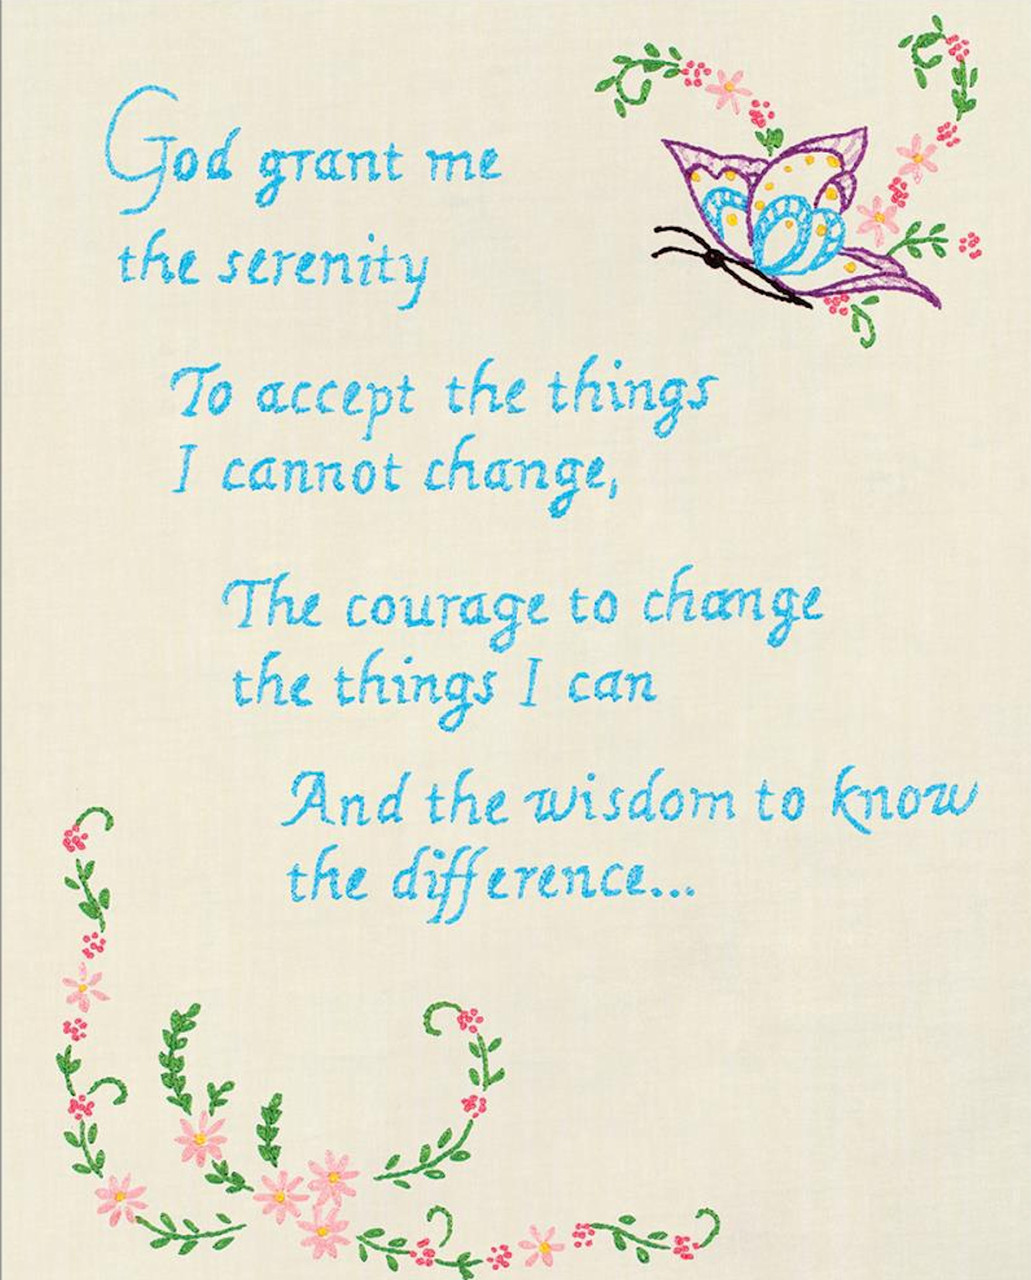 Jack Dempsey Needle Art - Serenity Prayer Sampler